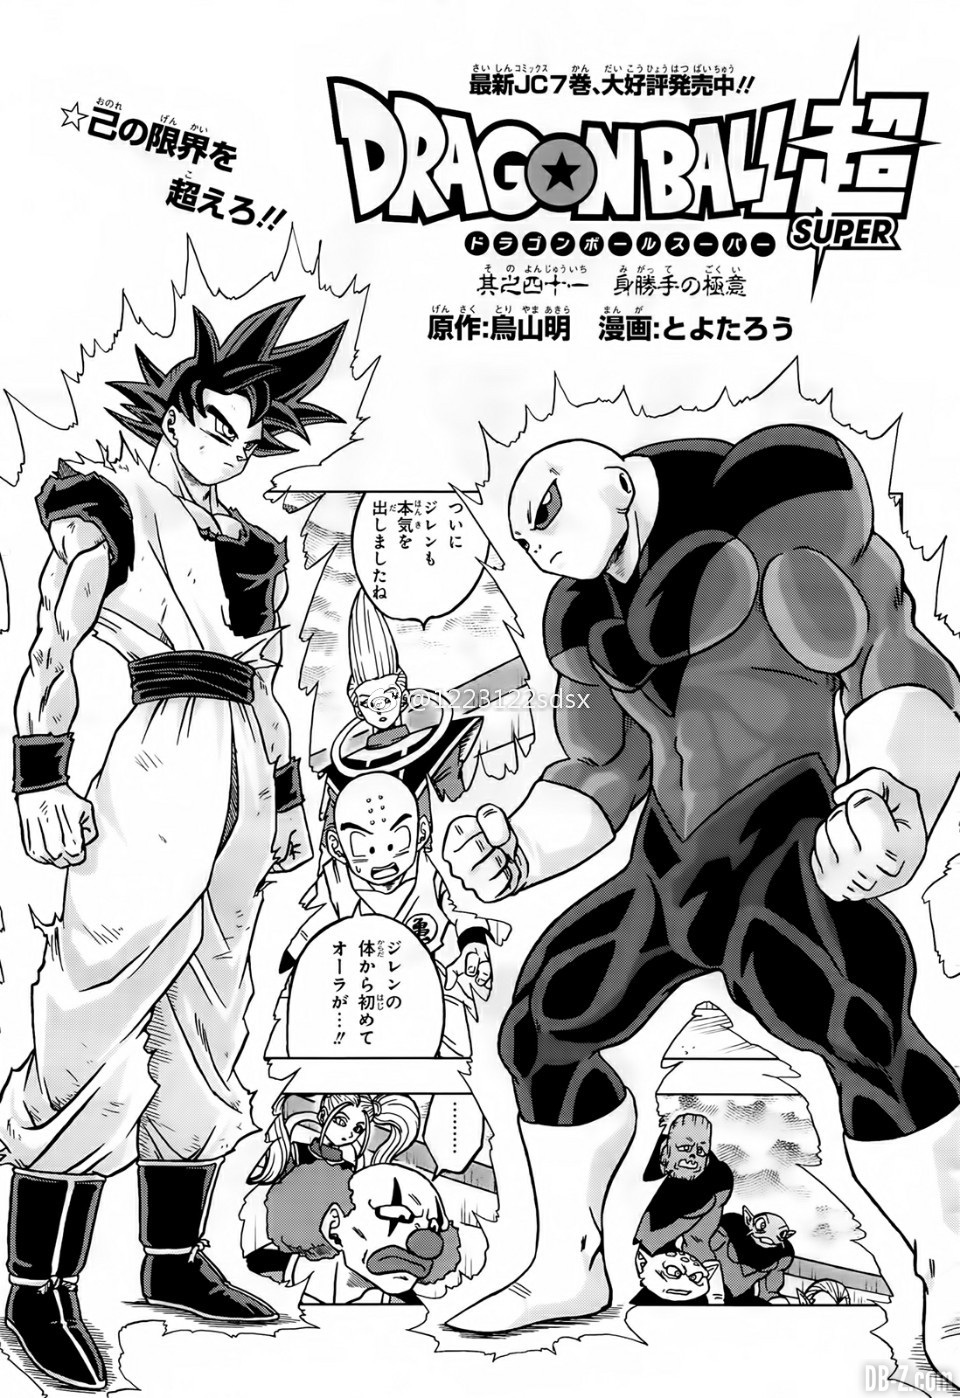 Chapitre 41 de Dragon Ball Super 1